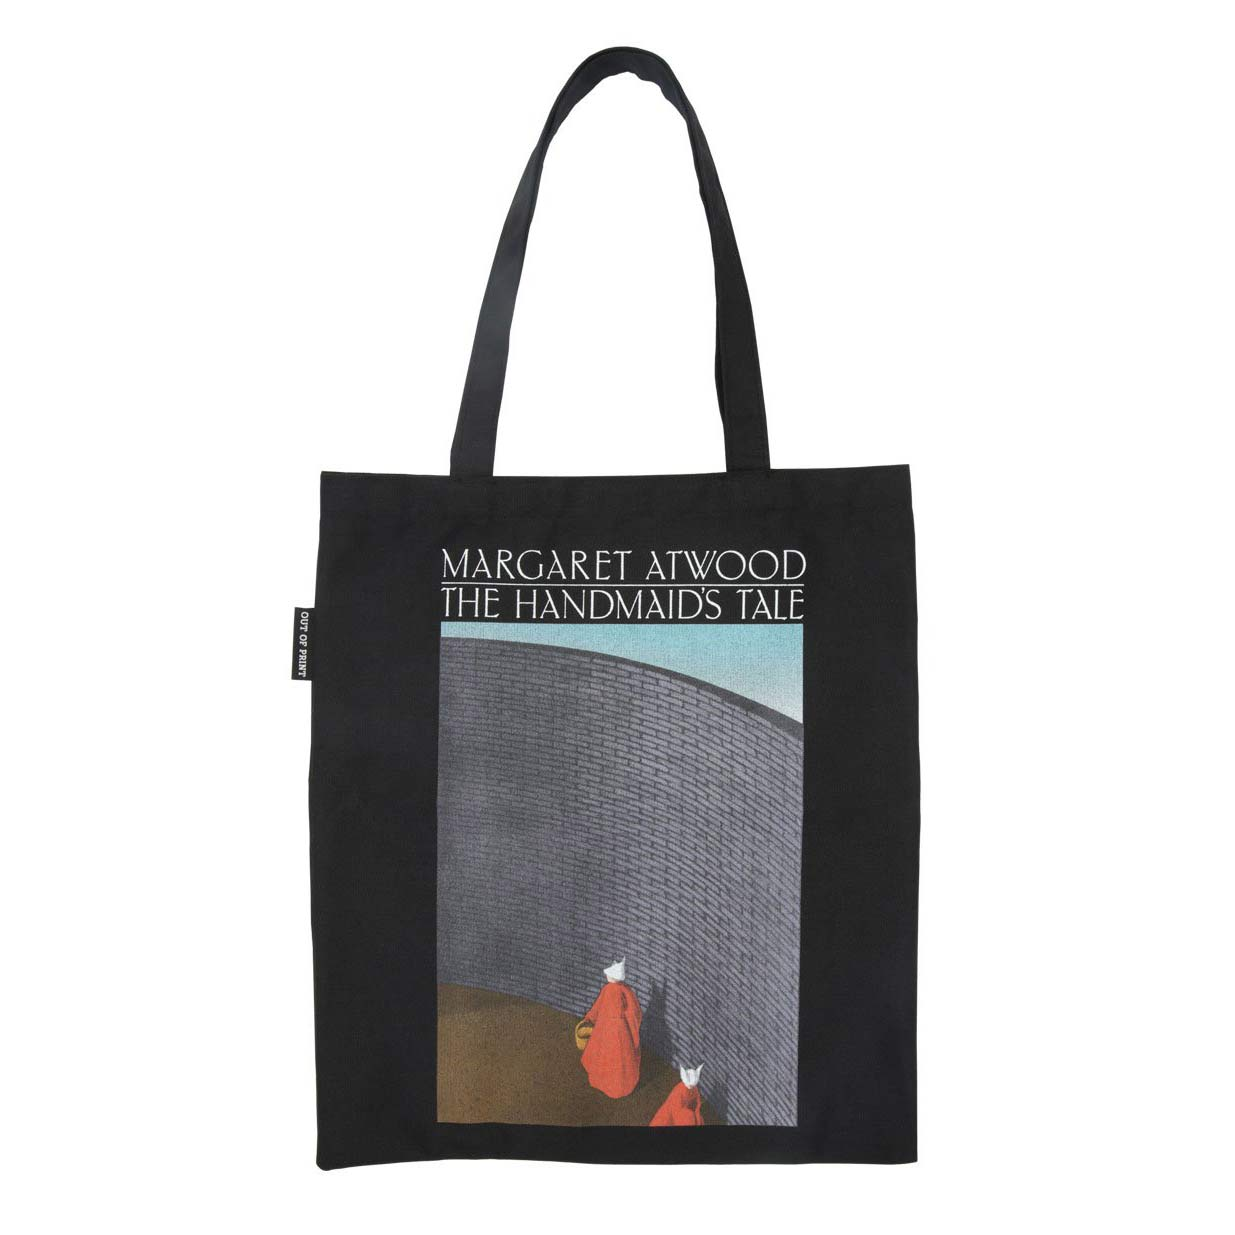 Tote Bag - Margaret Atwood - The Handmaid's Tale